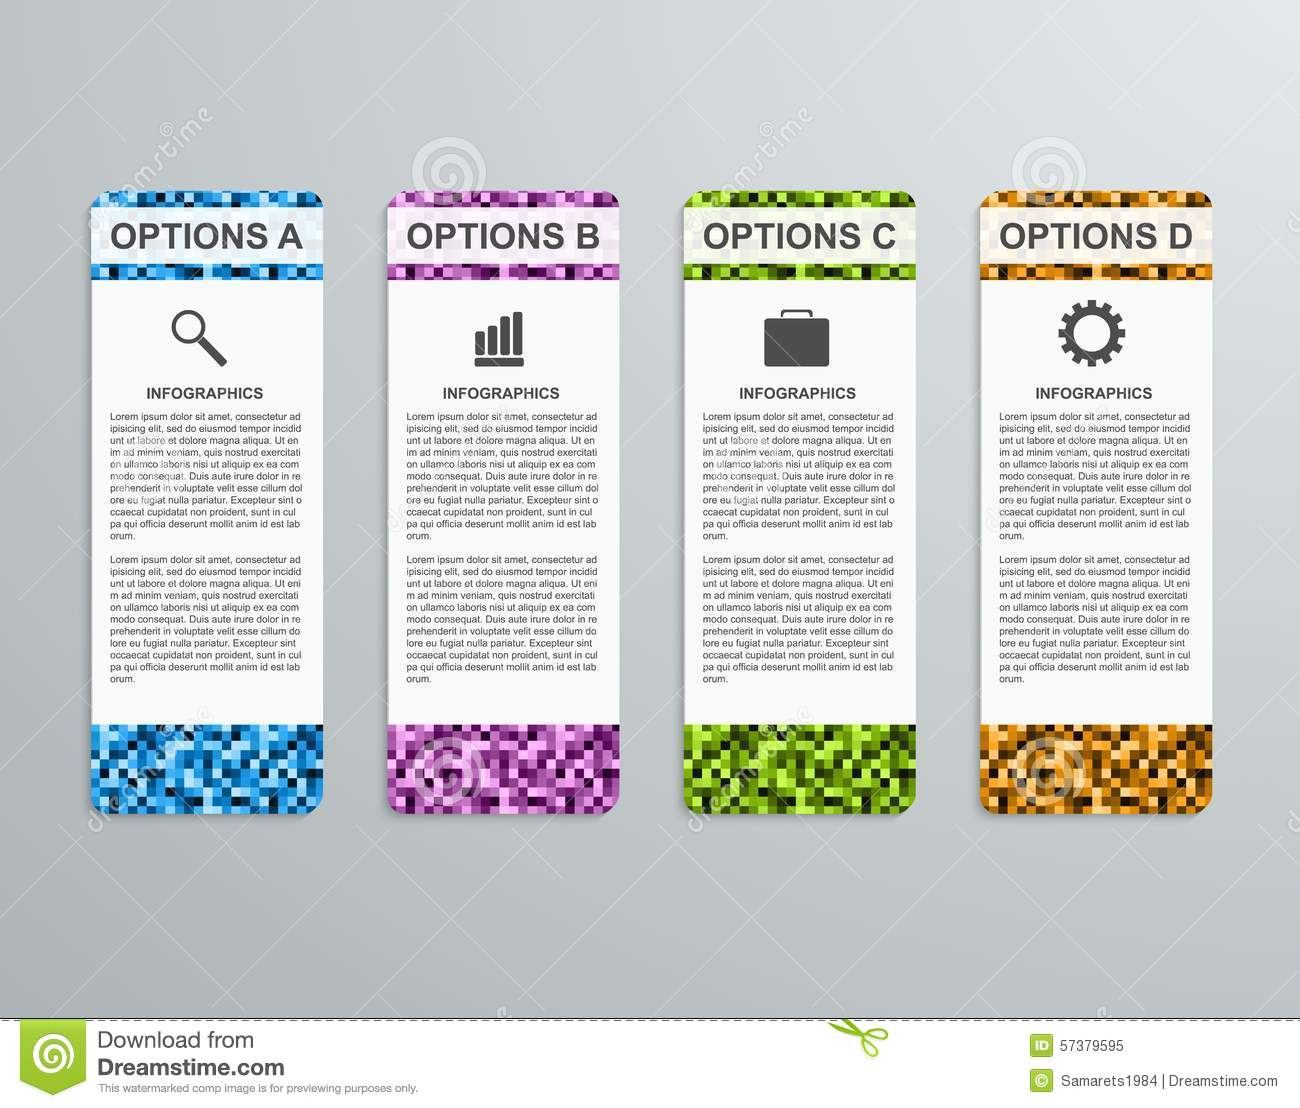 Indicators of binary options trading without redrawings